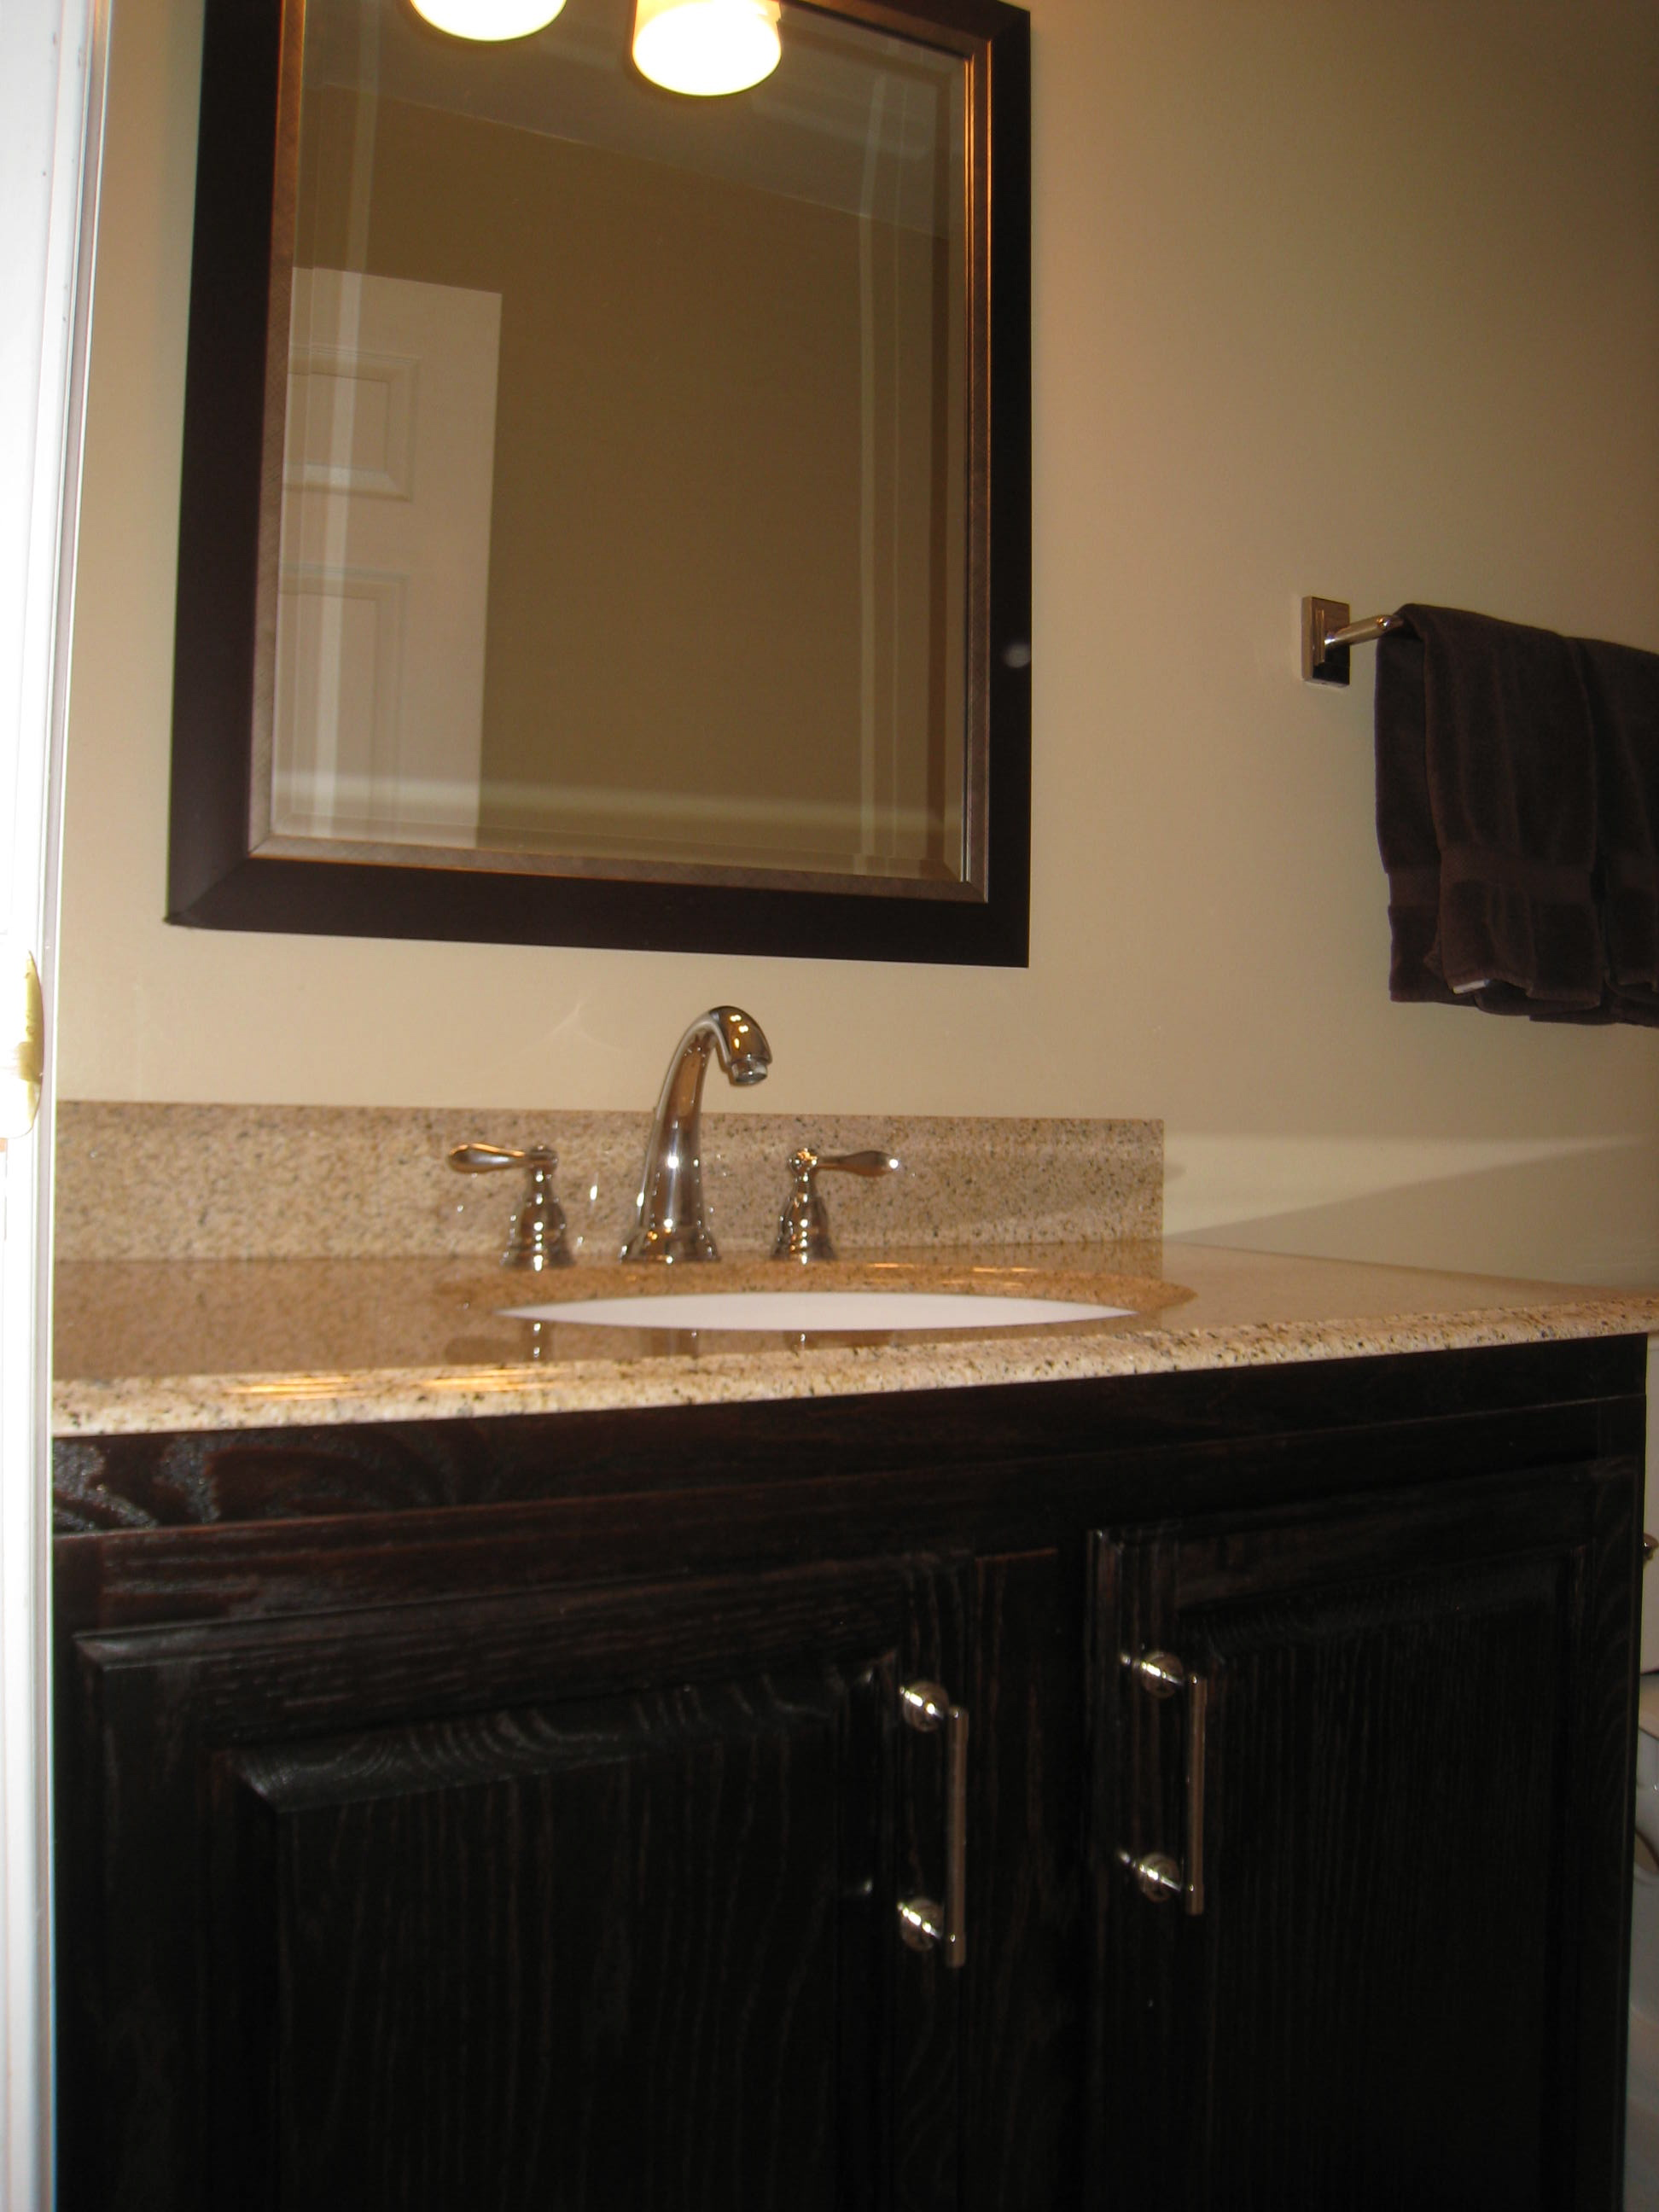 Diy before and after bathroom vanity makeover intentional designs